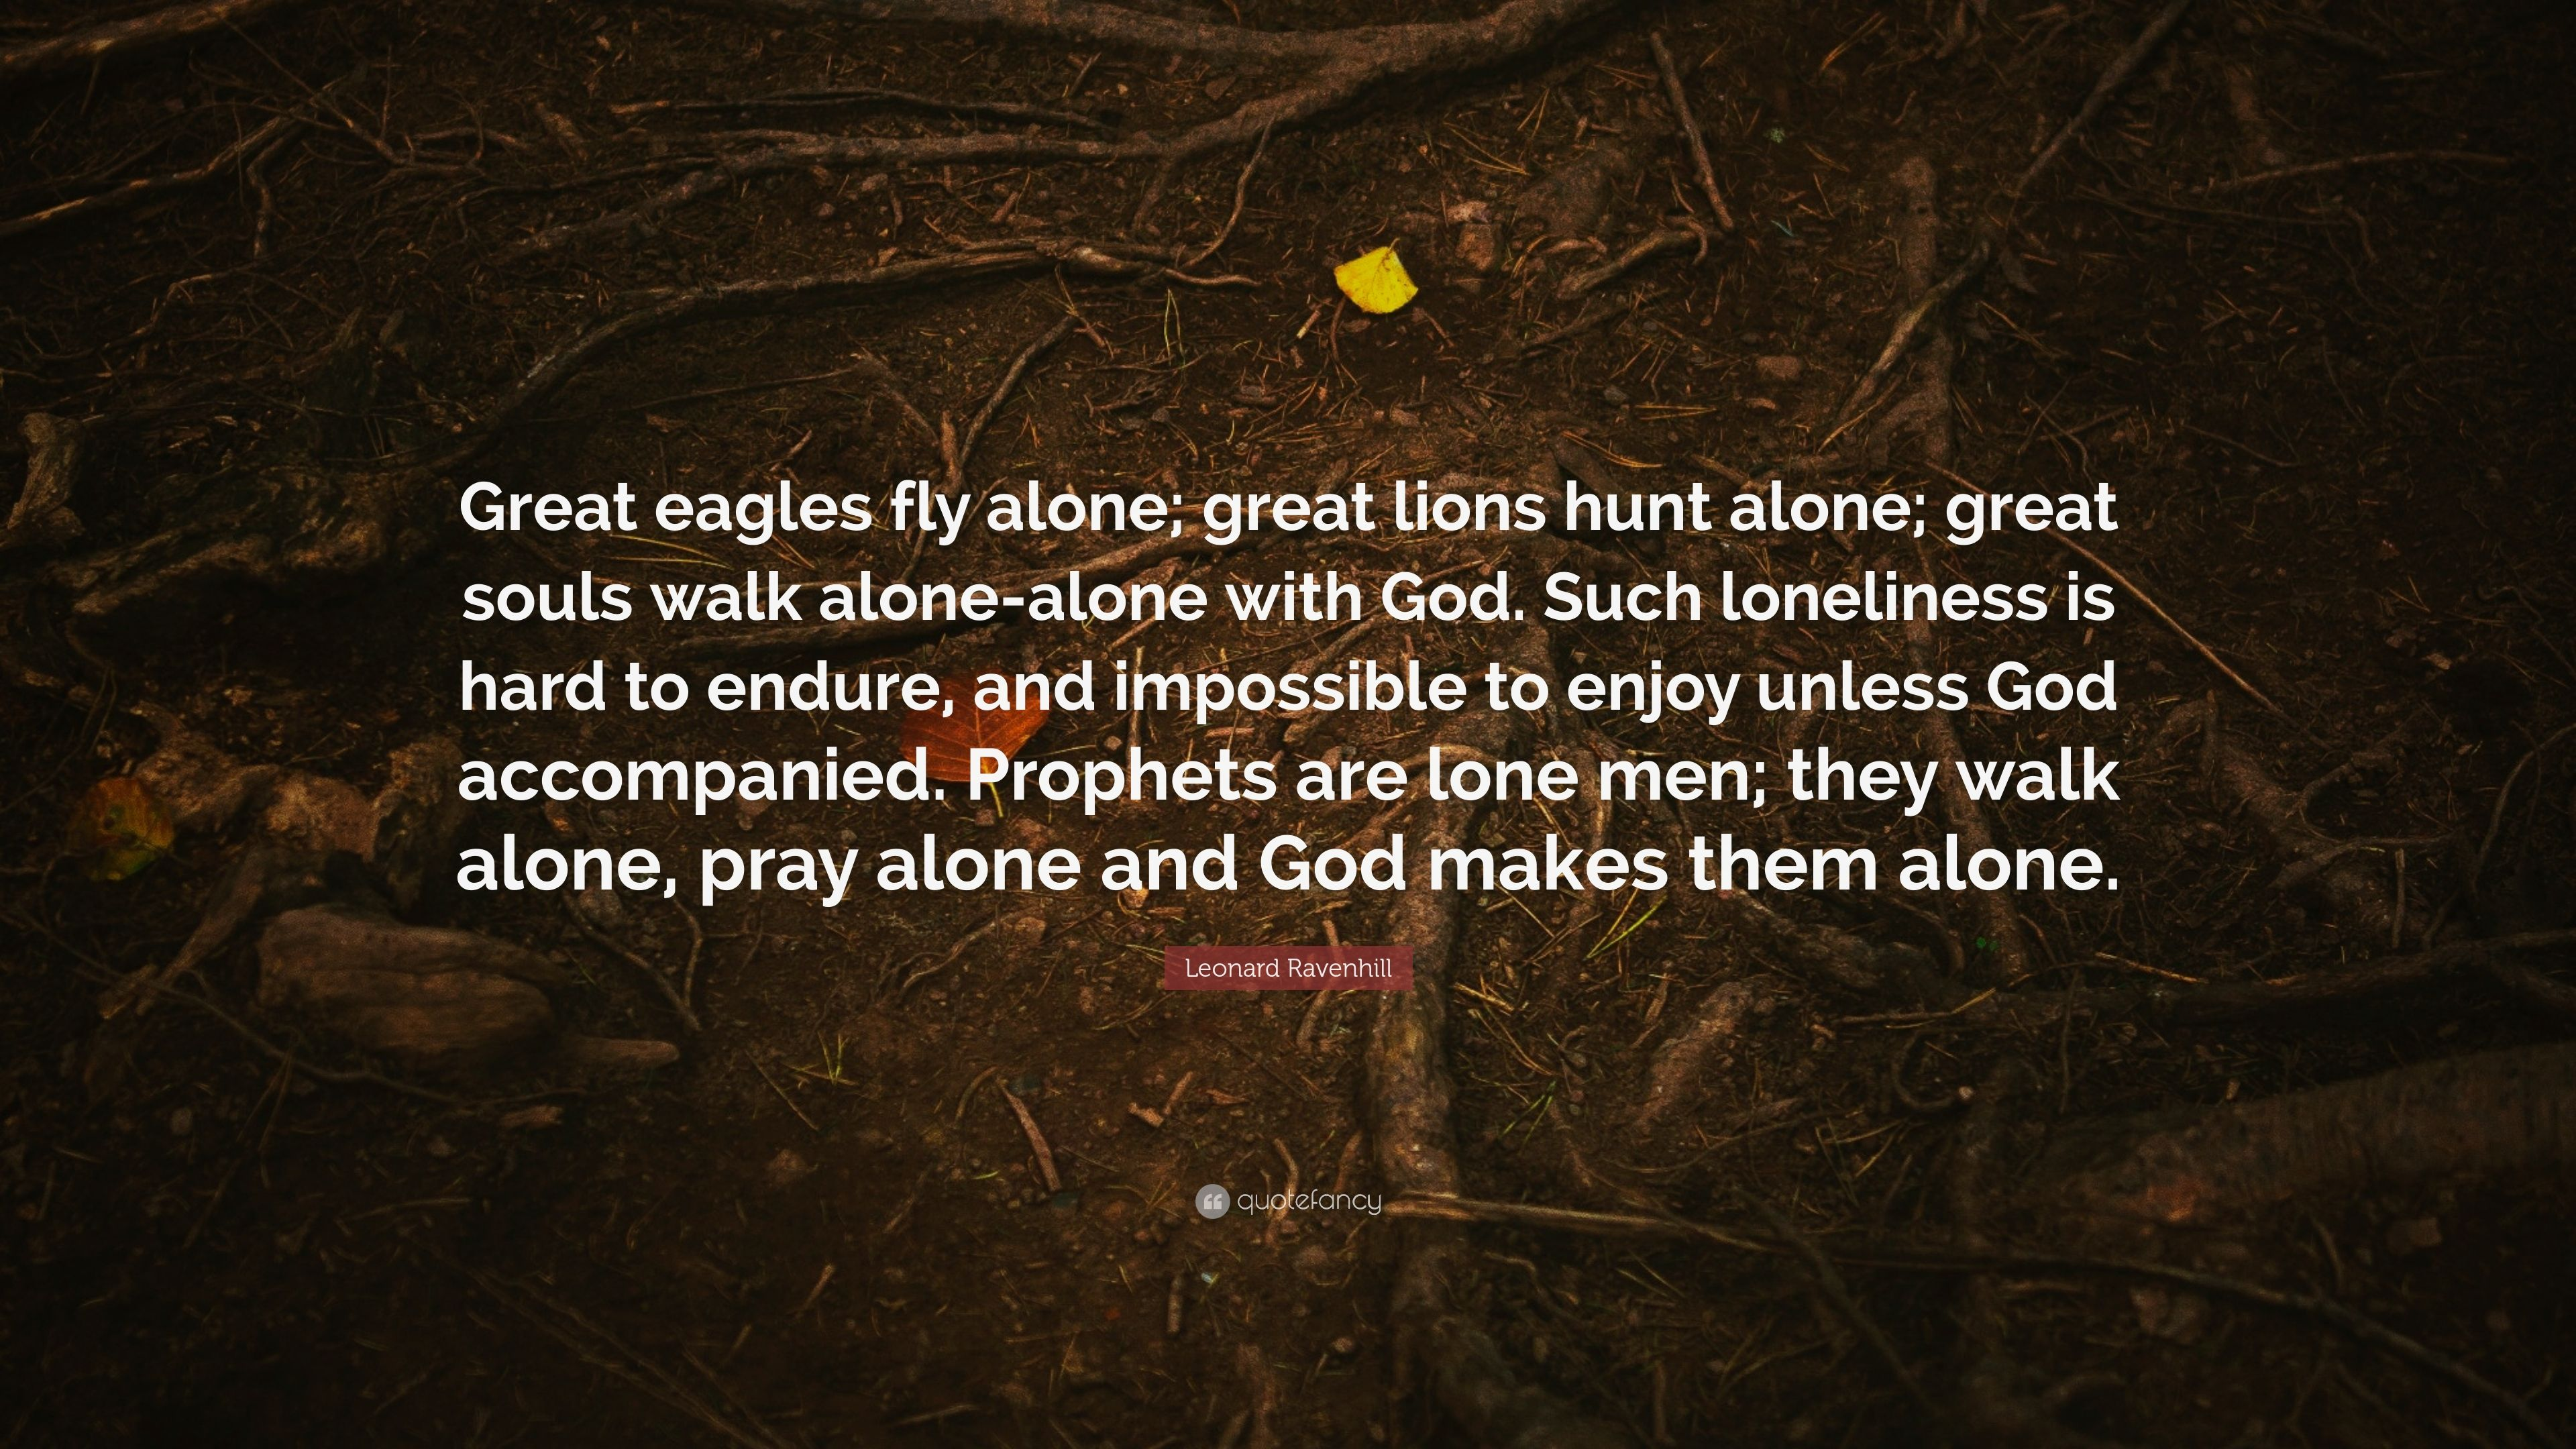 Leonard Ravenhill Quote Great Eagles Fly Alone Great Lions Hunt Alone Great Souls Walk Alone Alone With God Such Loneliness Is Hard To Endure 12 Wallpapers Quotefancy